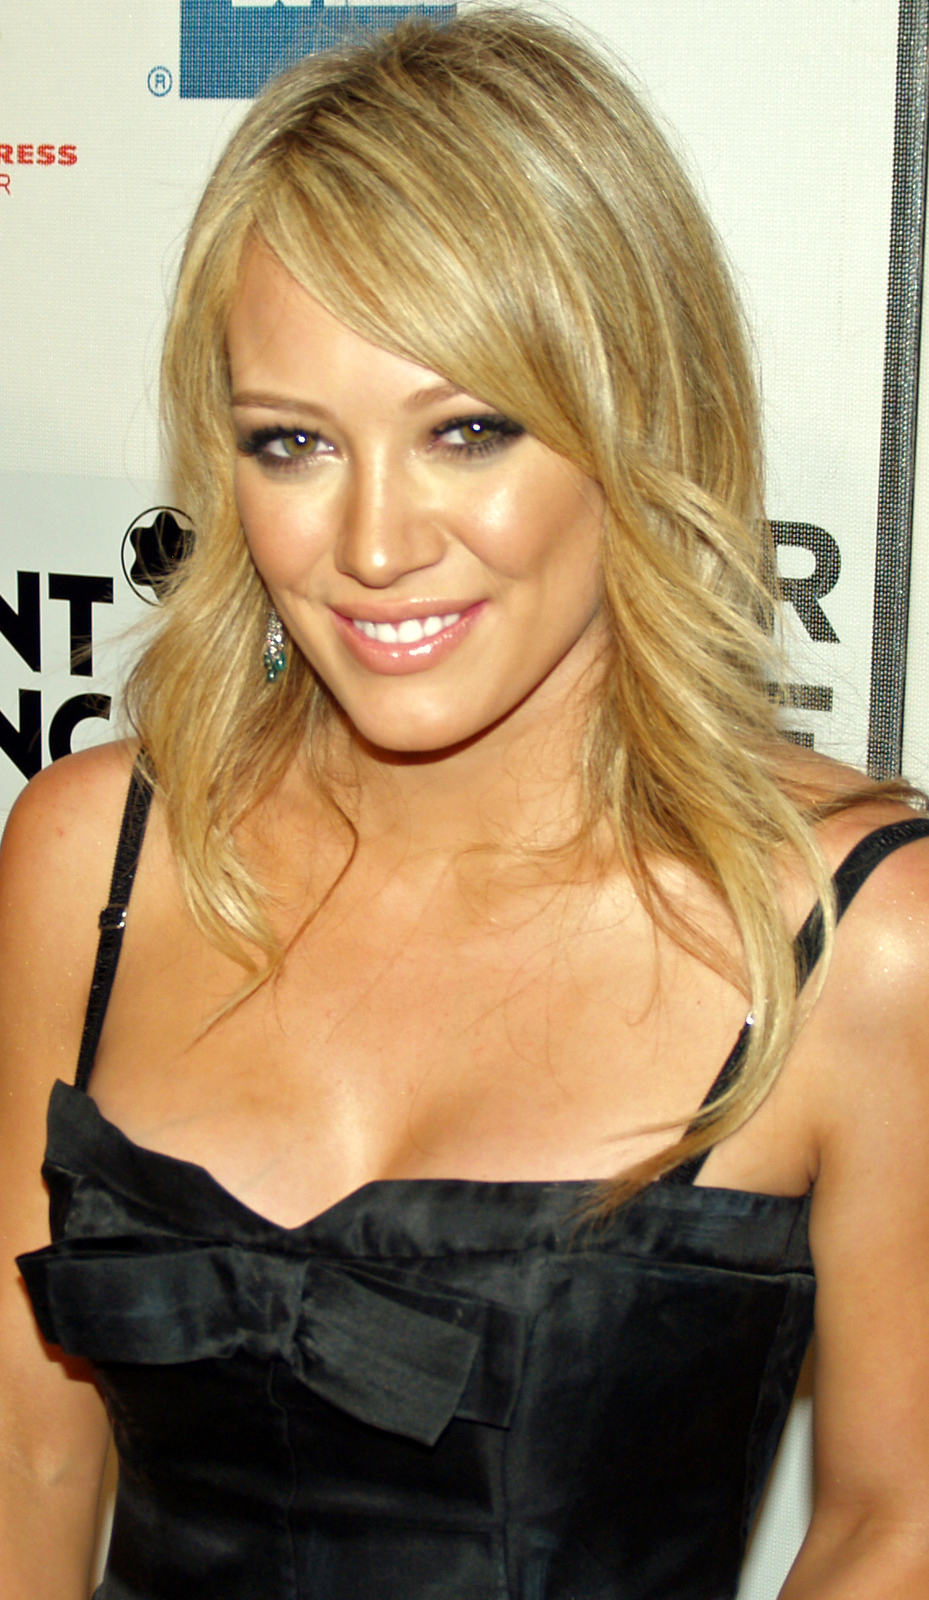 Makeup Star Libra Women Hilary Duff-7